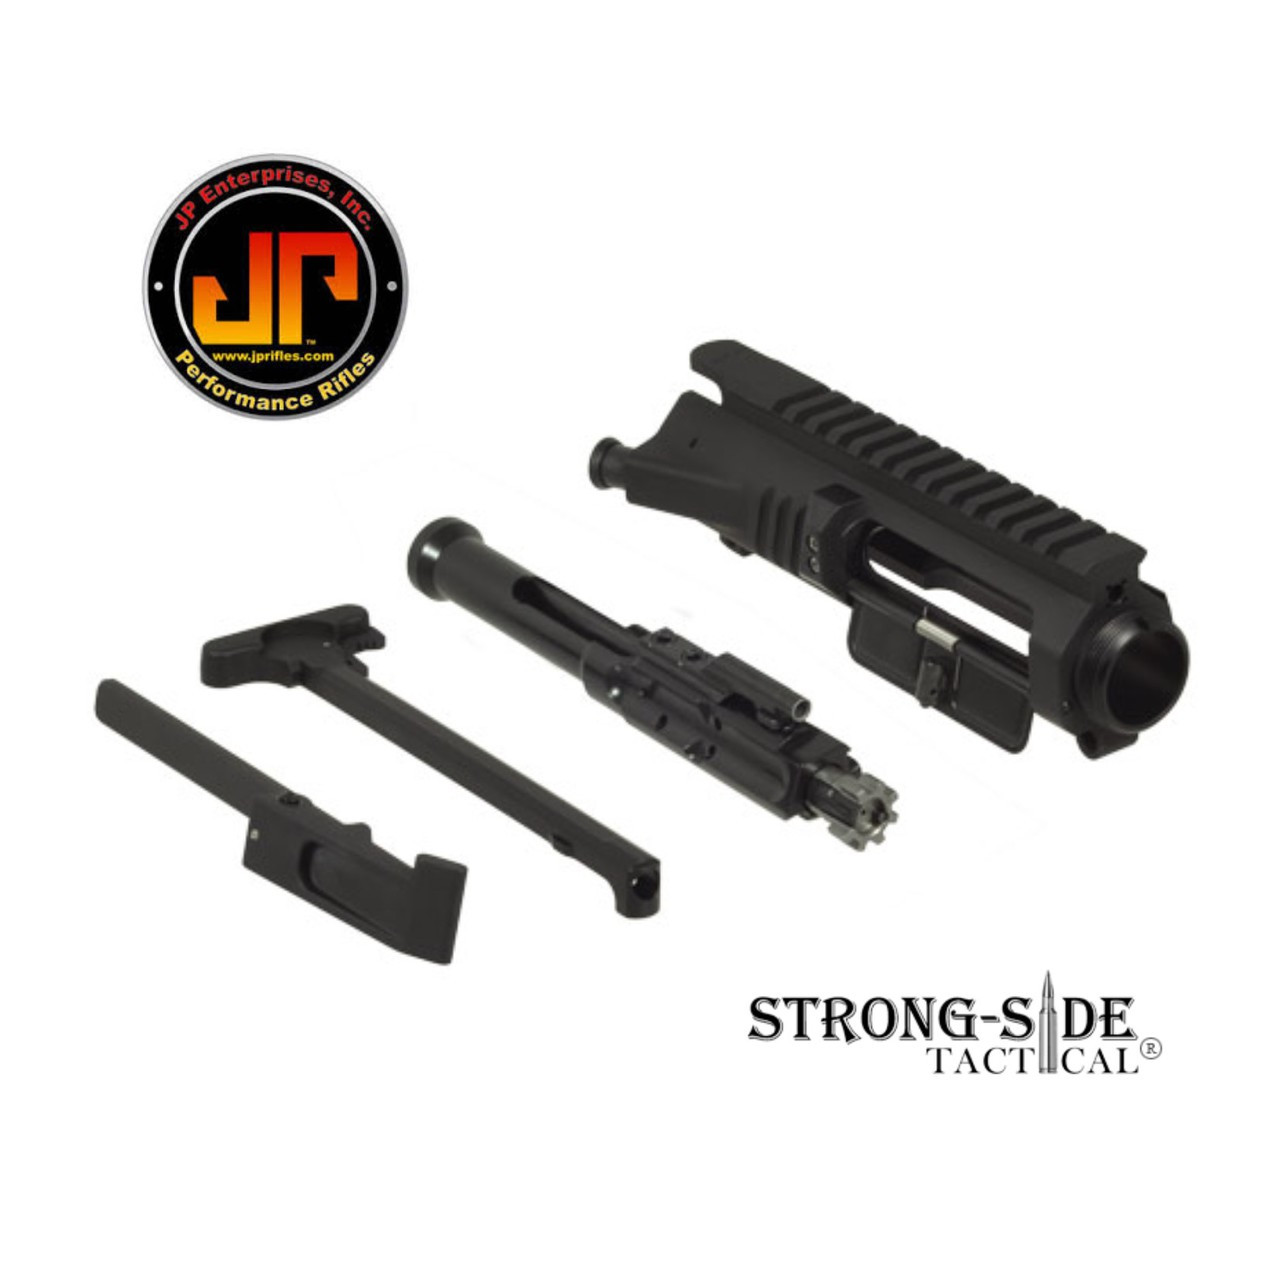 JP AR15 Dual Charge Upper Kit (Low Mass)